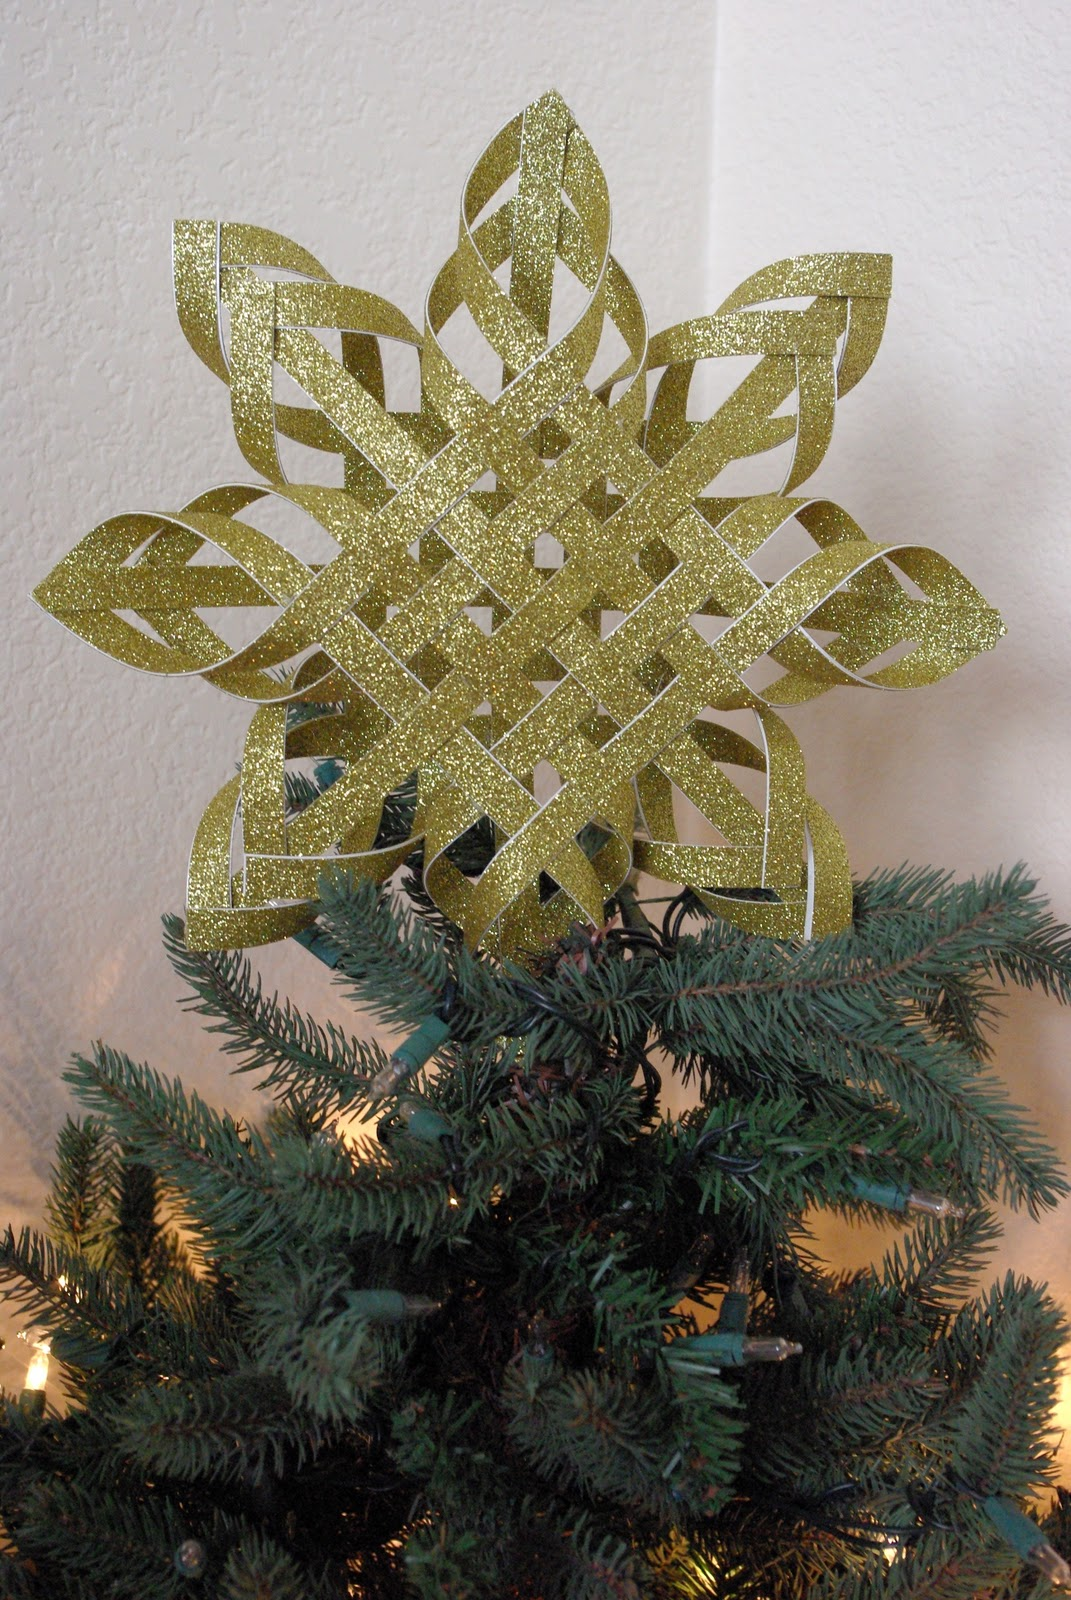 · How to Make a 3D Paper Snowflake. Three dimensional paper snowflakes look beautiful hanging in a window or on a wall. Fun for kids or adults, they are easy to make. Some like them for Christmas, but you may like them any time! Gather.